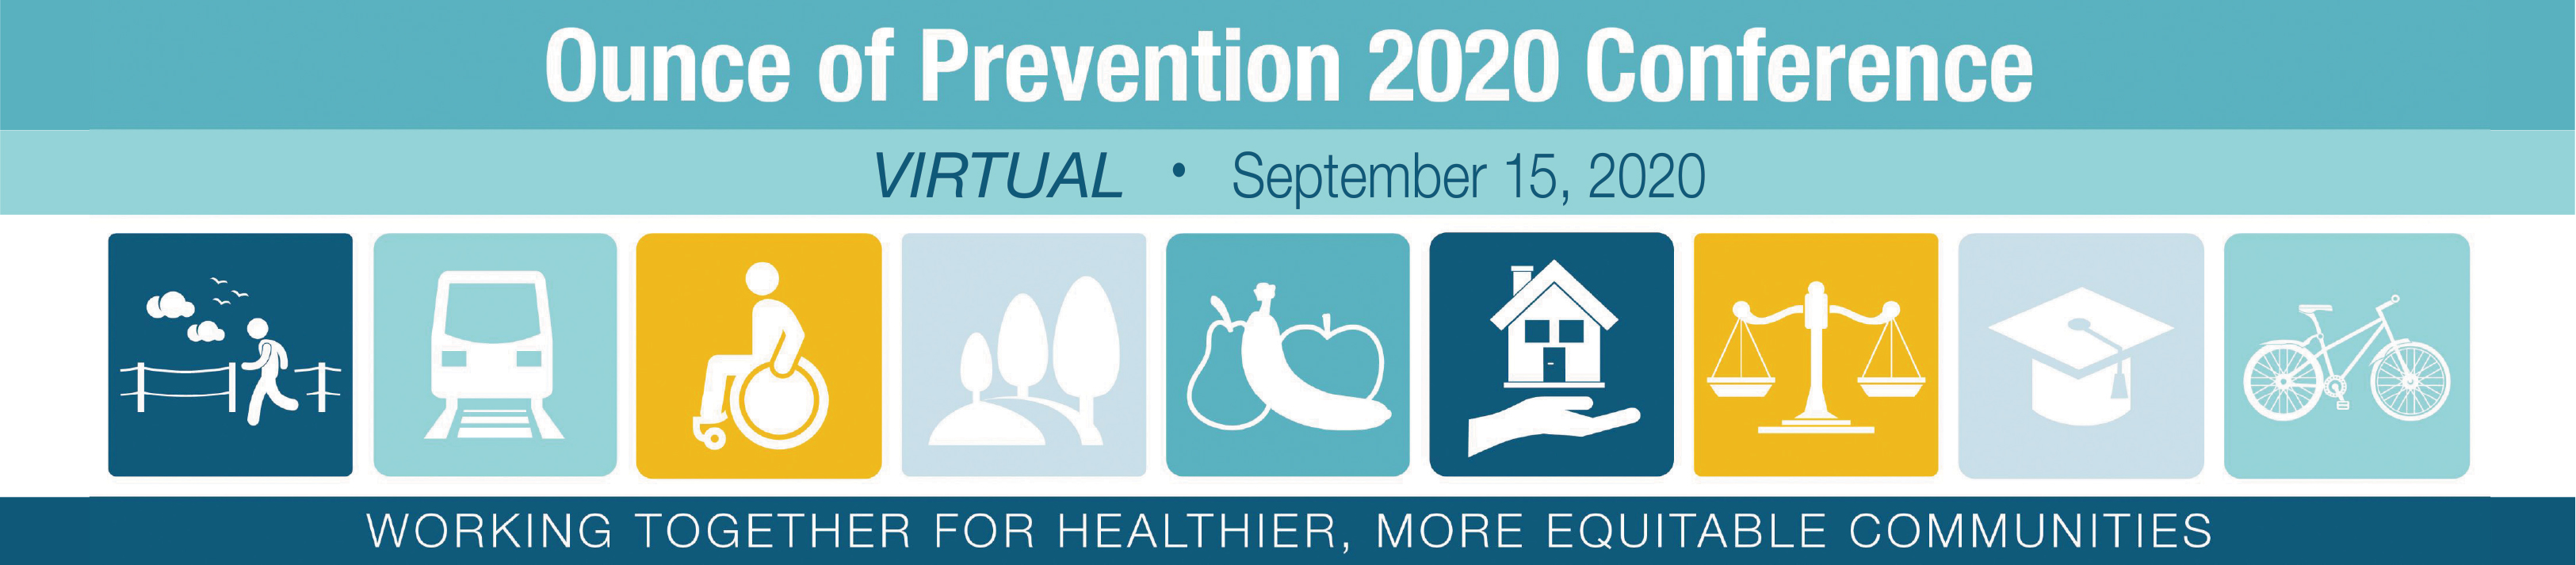 VIRTUAL- Ounce of Prevention Conference 2020